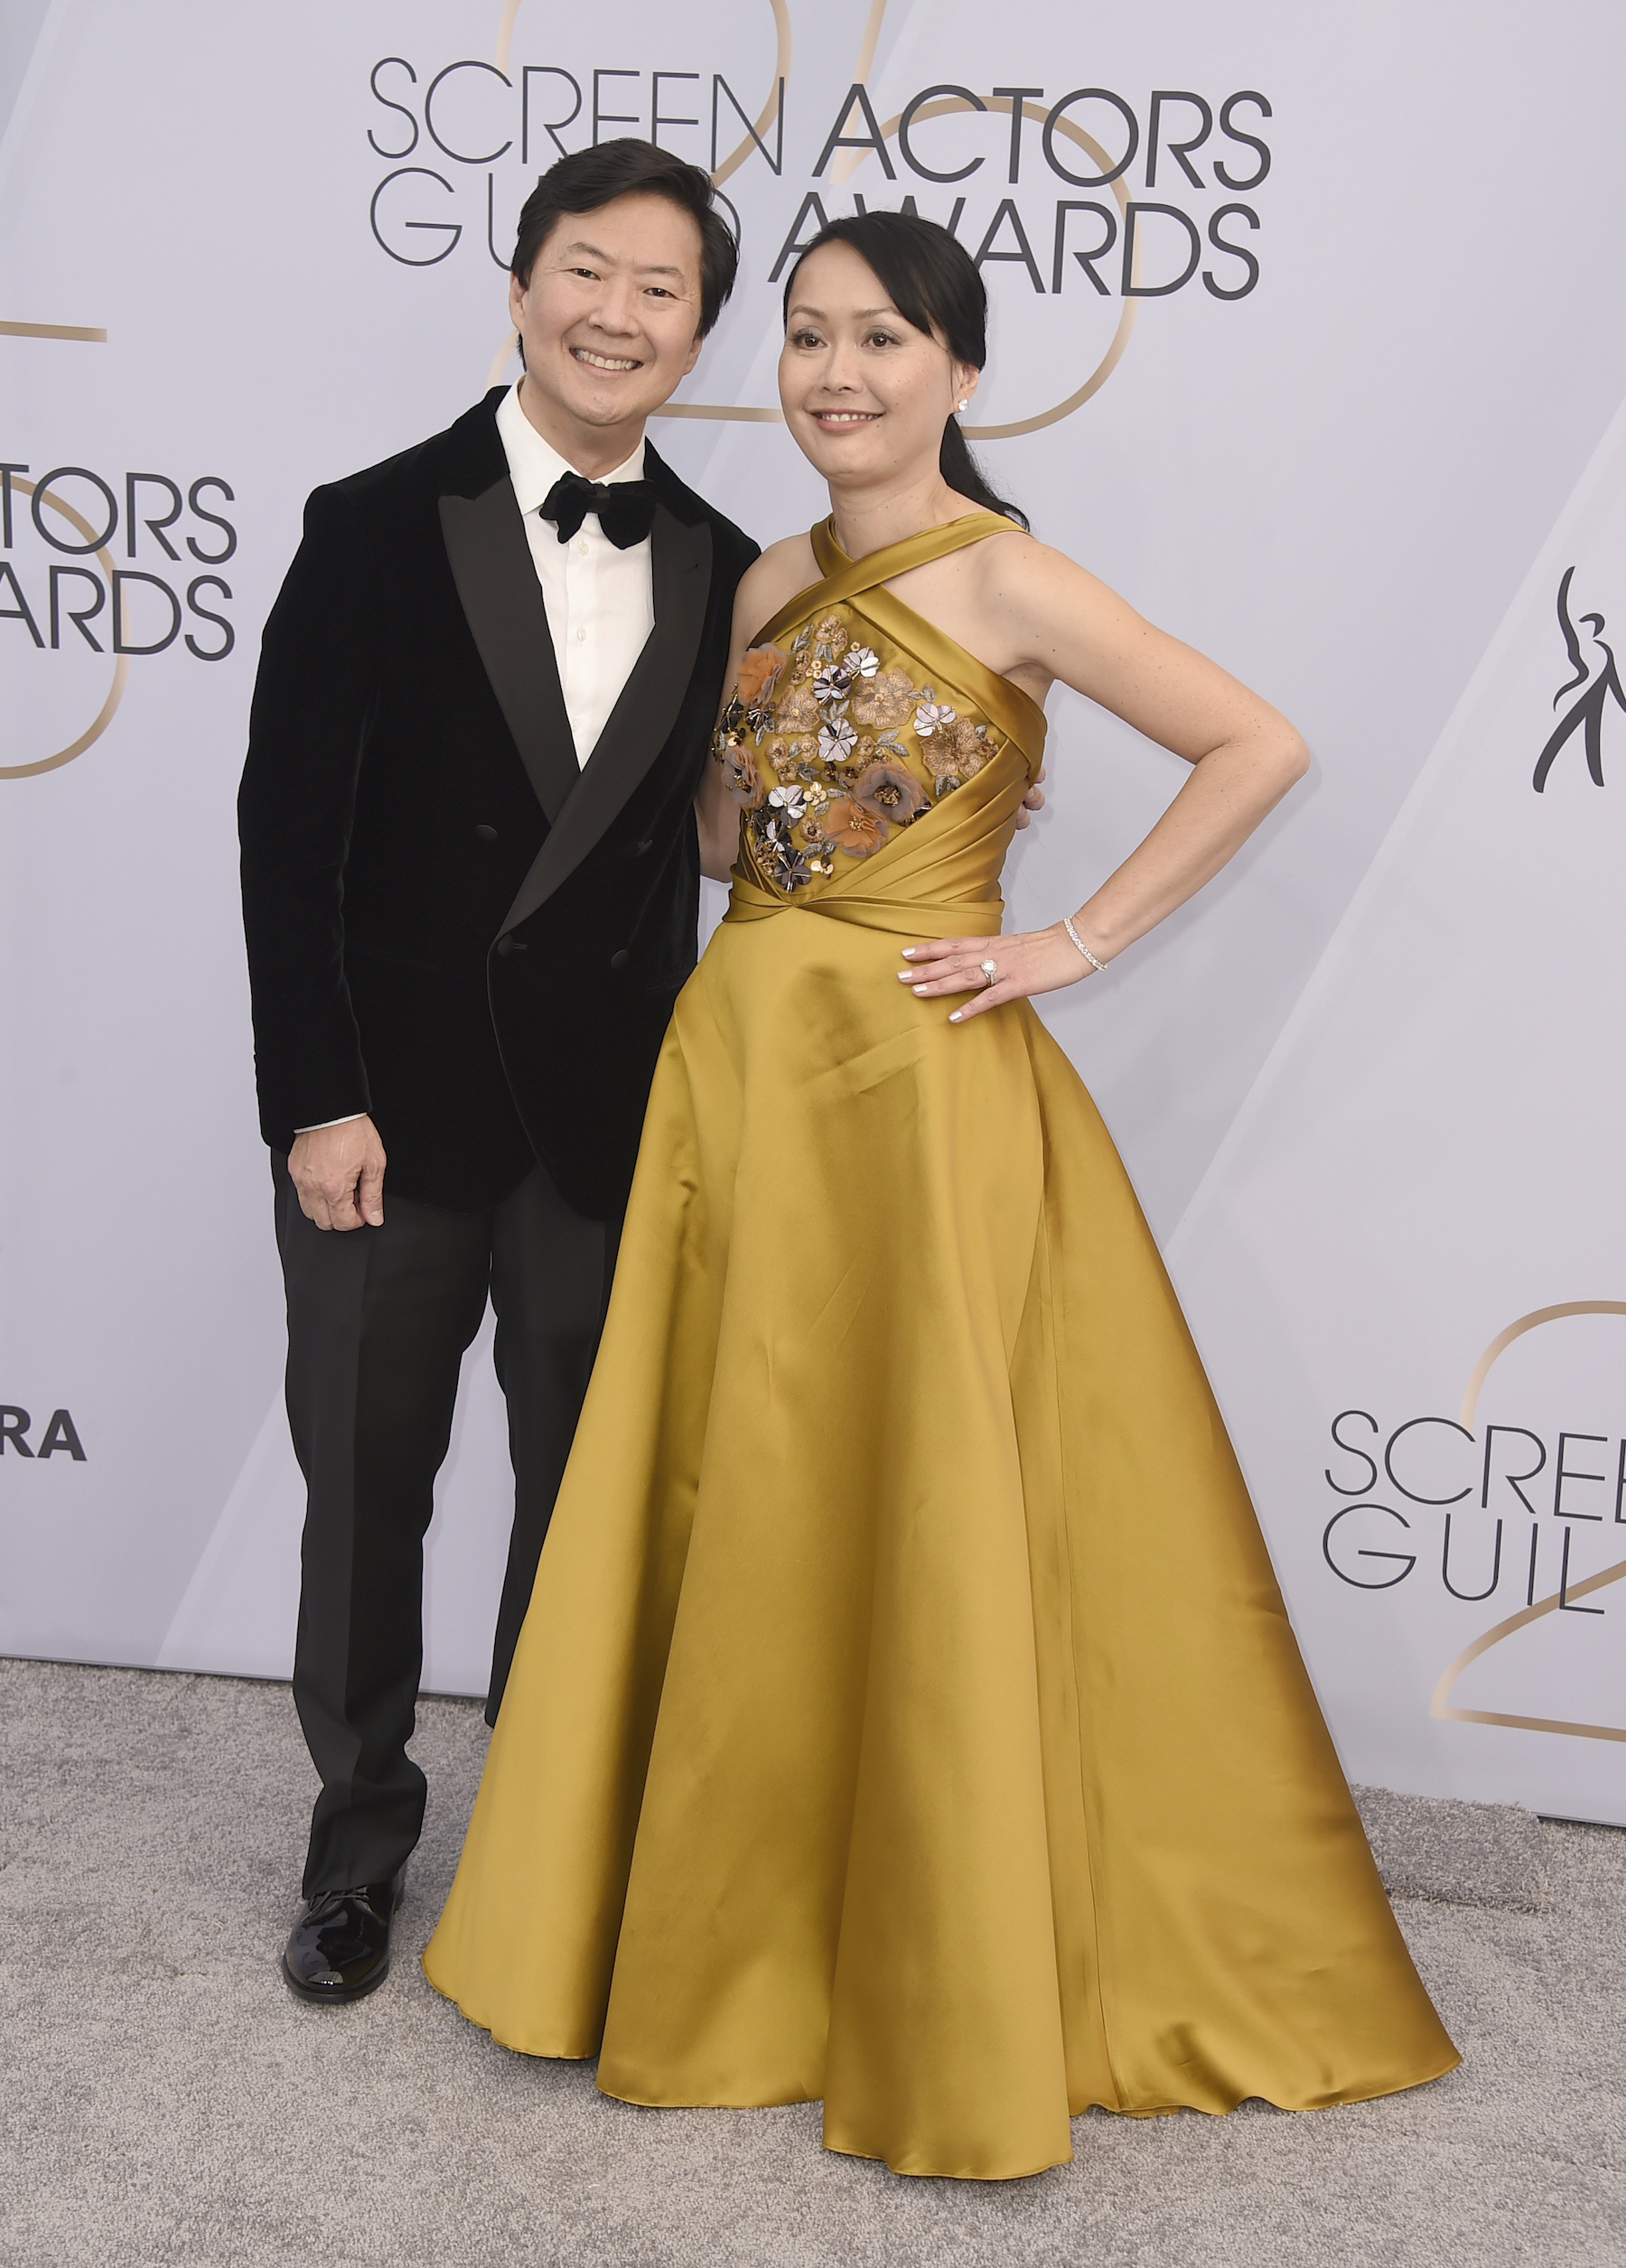 "<div class=""meta image-caption""><div class=""origin-logo origin-image ap""><span>AP</span></div><span class=""caption-text"">Ken Jeong, left, and Tran Jeong arrive at the 25th annual Screen Actors Guild Awards at the Shrine Auditorium & Expo Hall on Sunday, Jan. 27, 2019, in Los Angeles. (Jordan Strauss/Invision/AP)</span></div>"